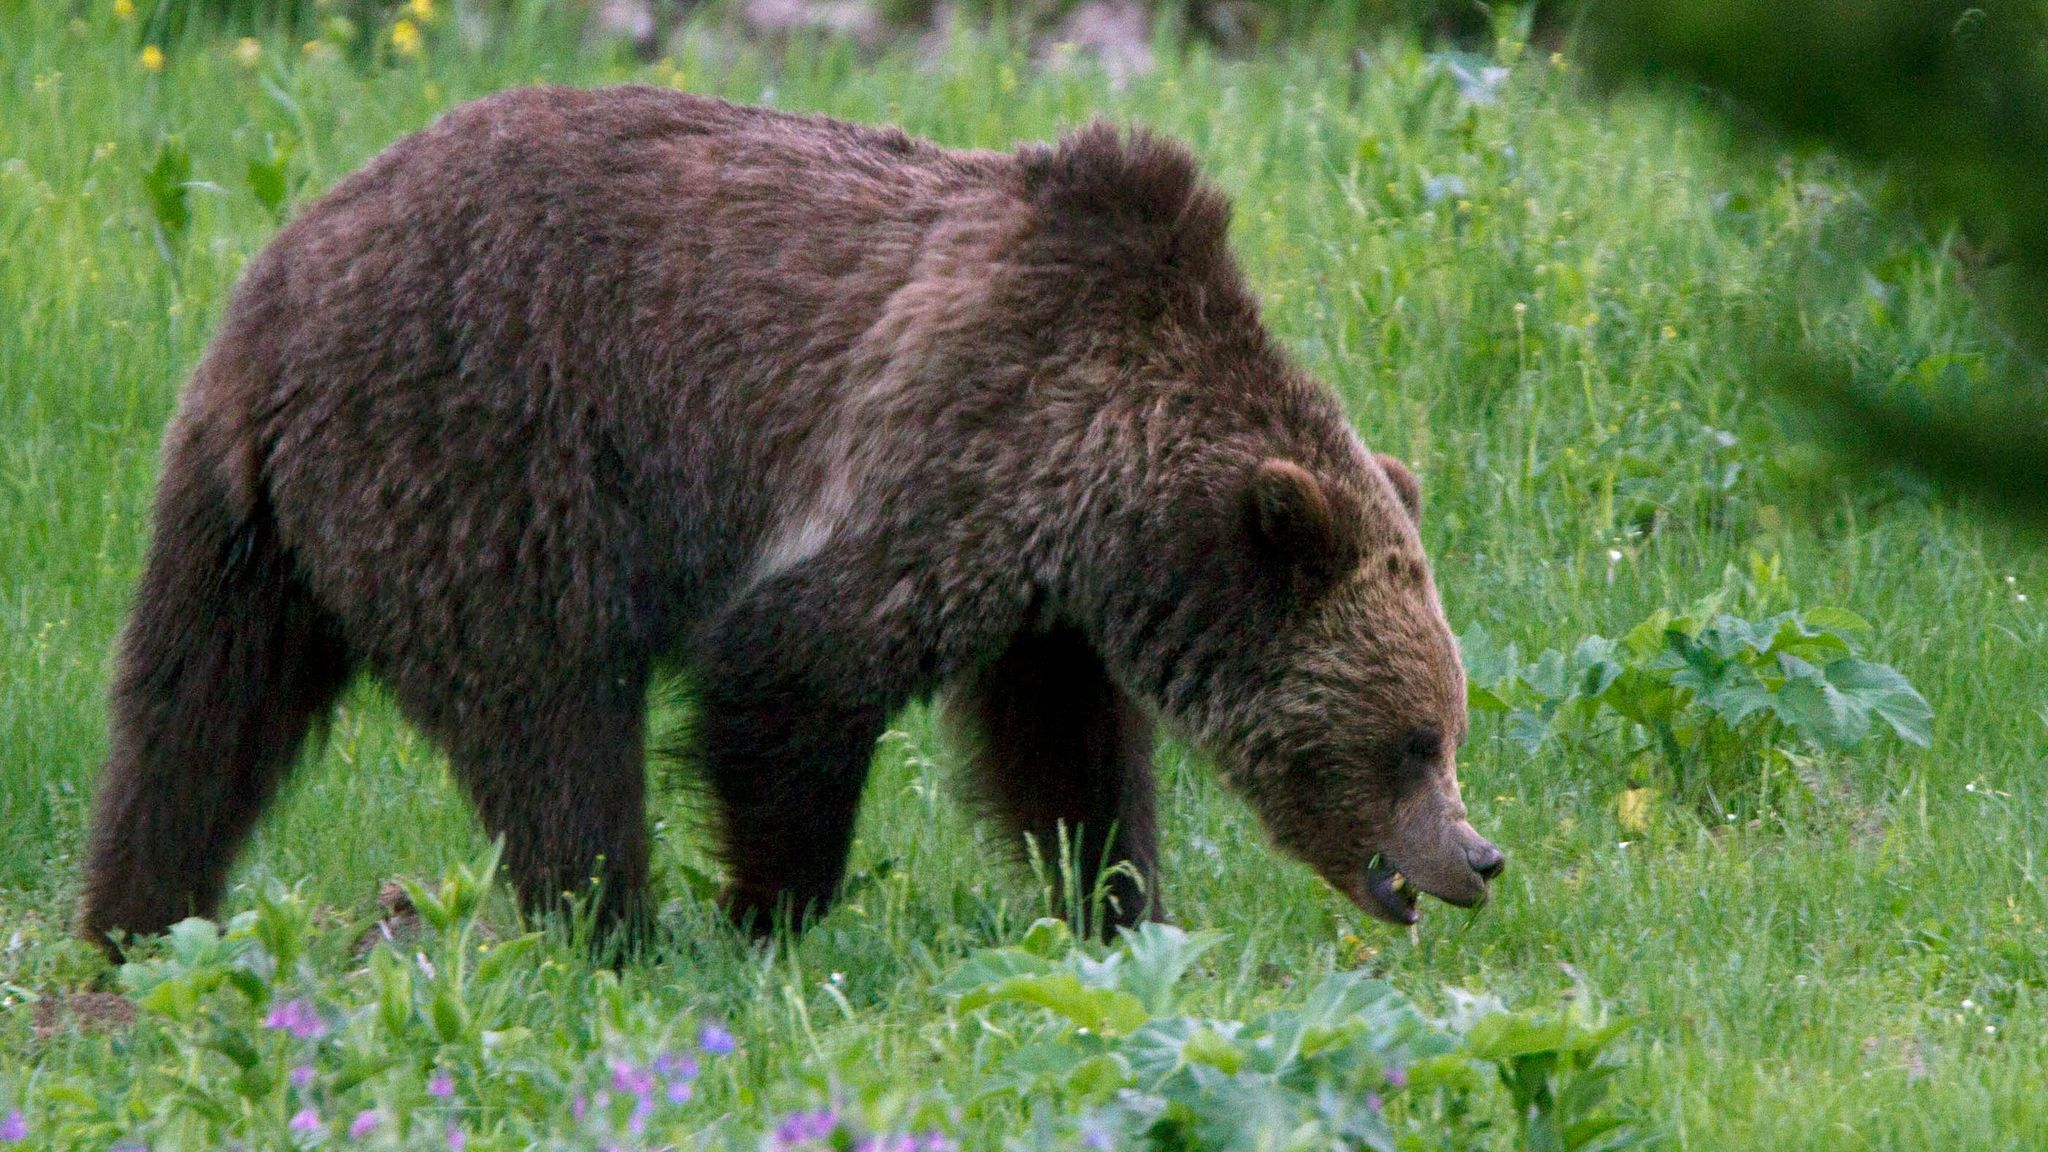 Conservationists and tribes denounce U.S. plan to remove Yellowstone grizzly bears from endangered species list